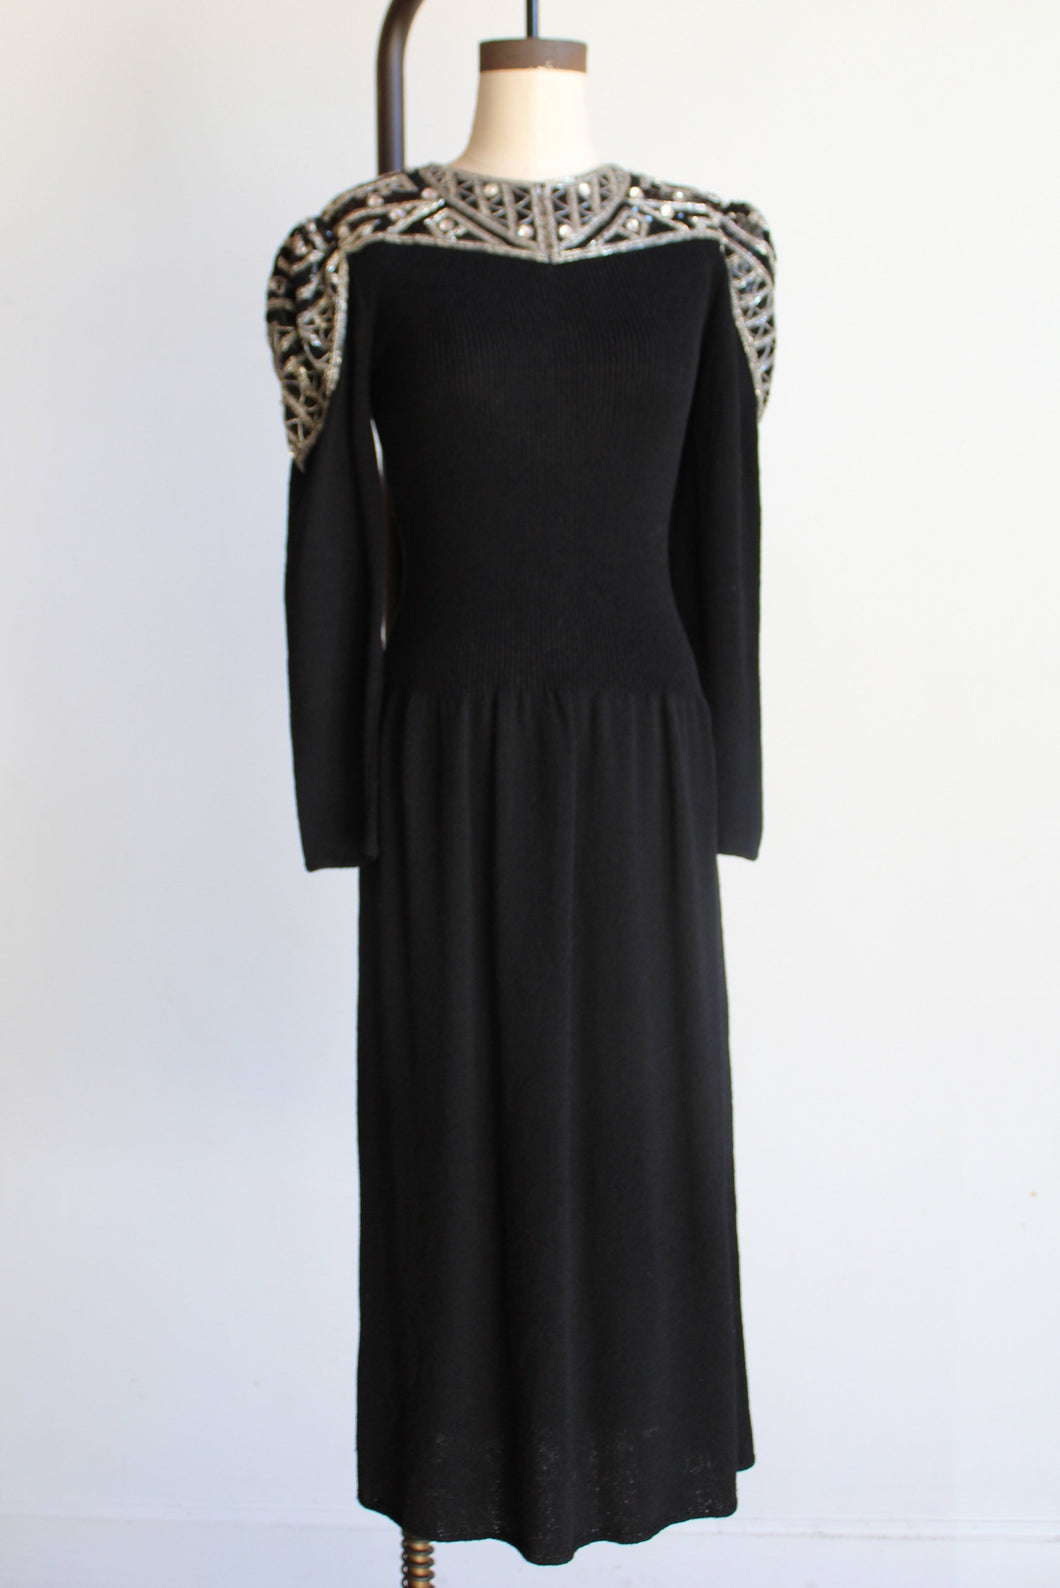 1980s Black Knit Dress with Sequin Rhinestone Encrusted Yoke + Shoulders by Pat Sandler for Wellmore